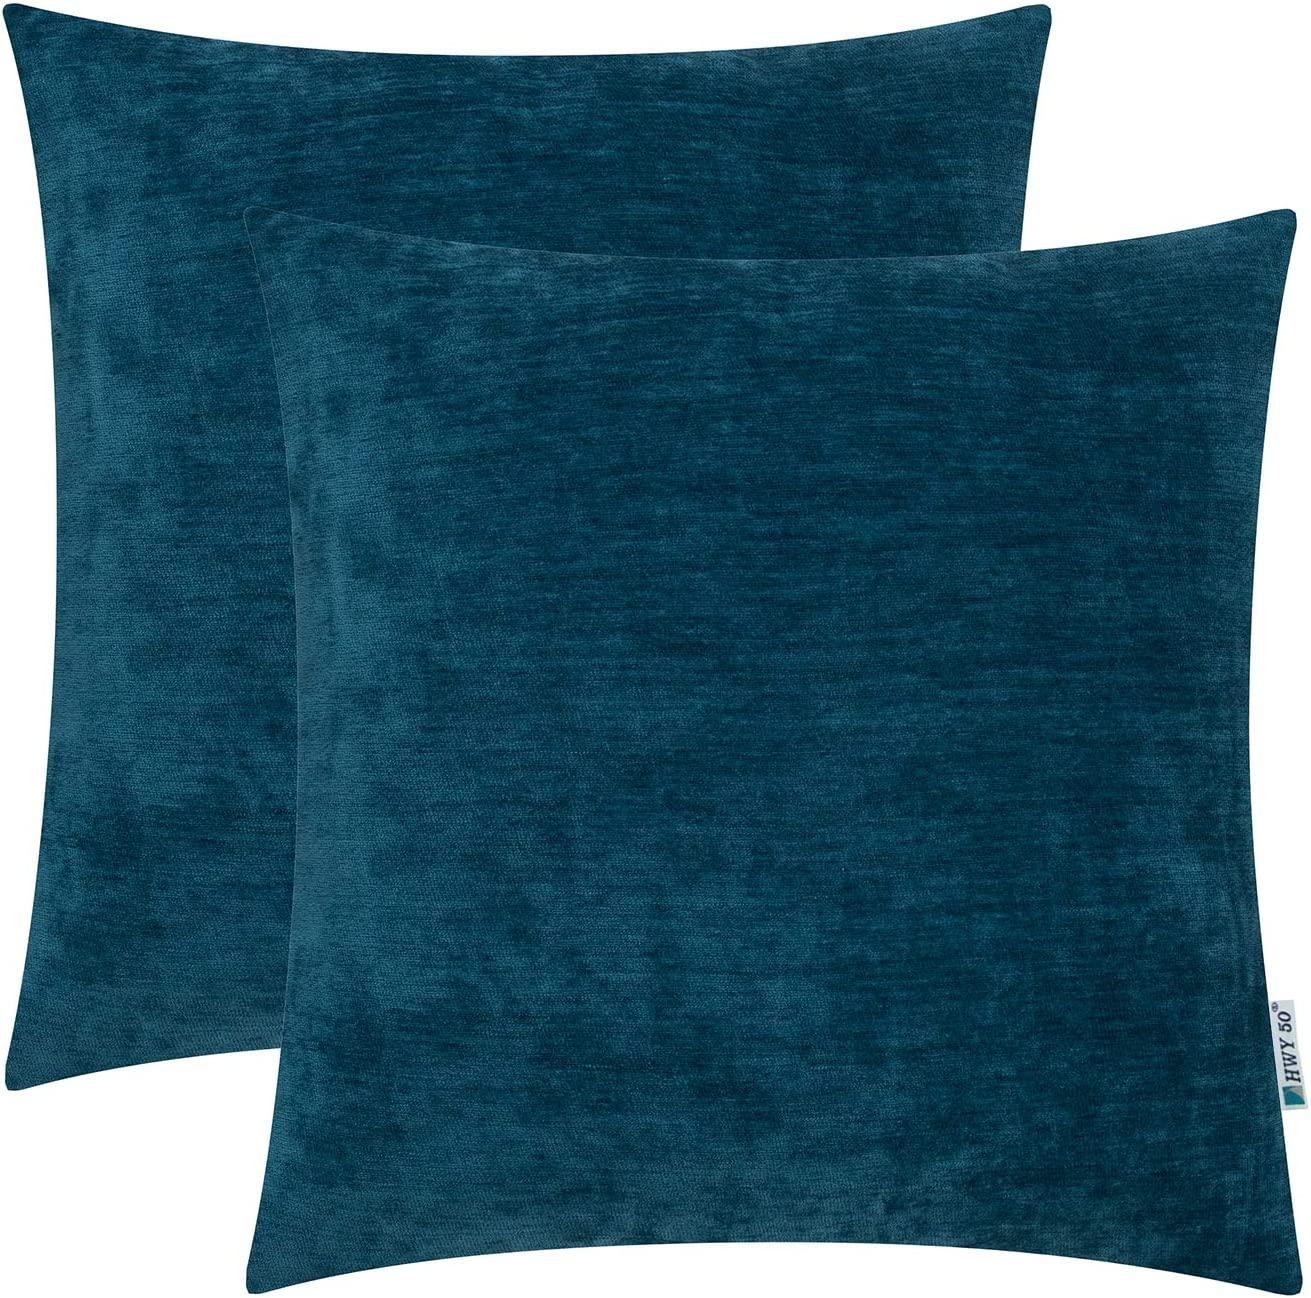 HWY 50 Chenille Soft Comfy Solid Decorative Throw Pillows Covers Set Cushion Cases for Couch Sofa Living Room Indigo 18 x 18 inches Pack of 2